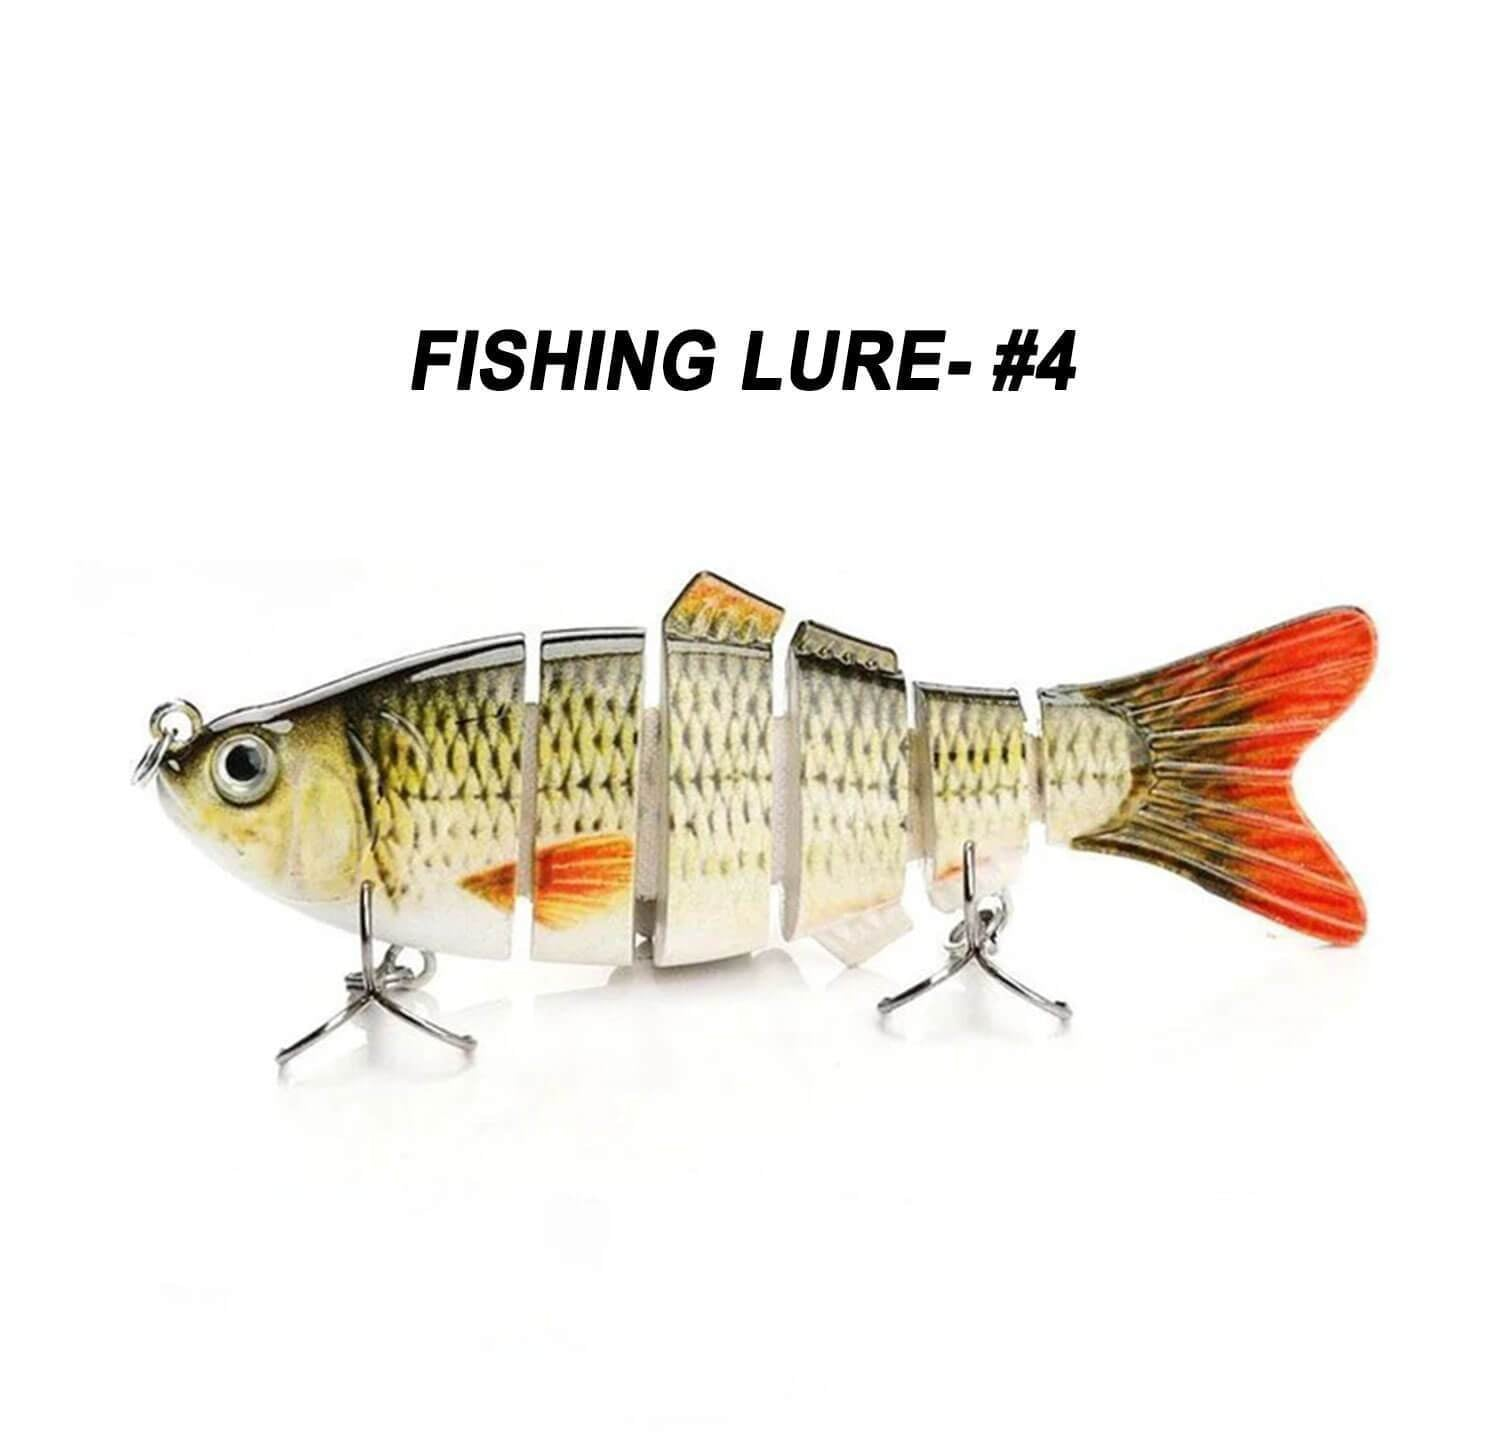 Bionic Swimming lure - Suitable for all kinds of fish